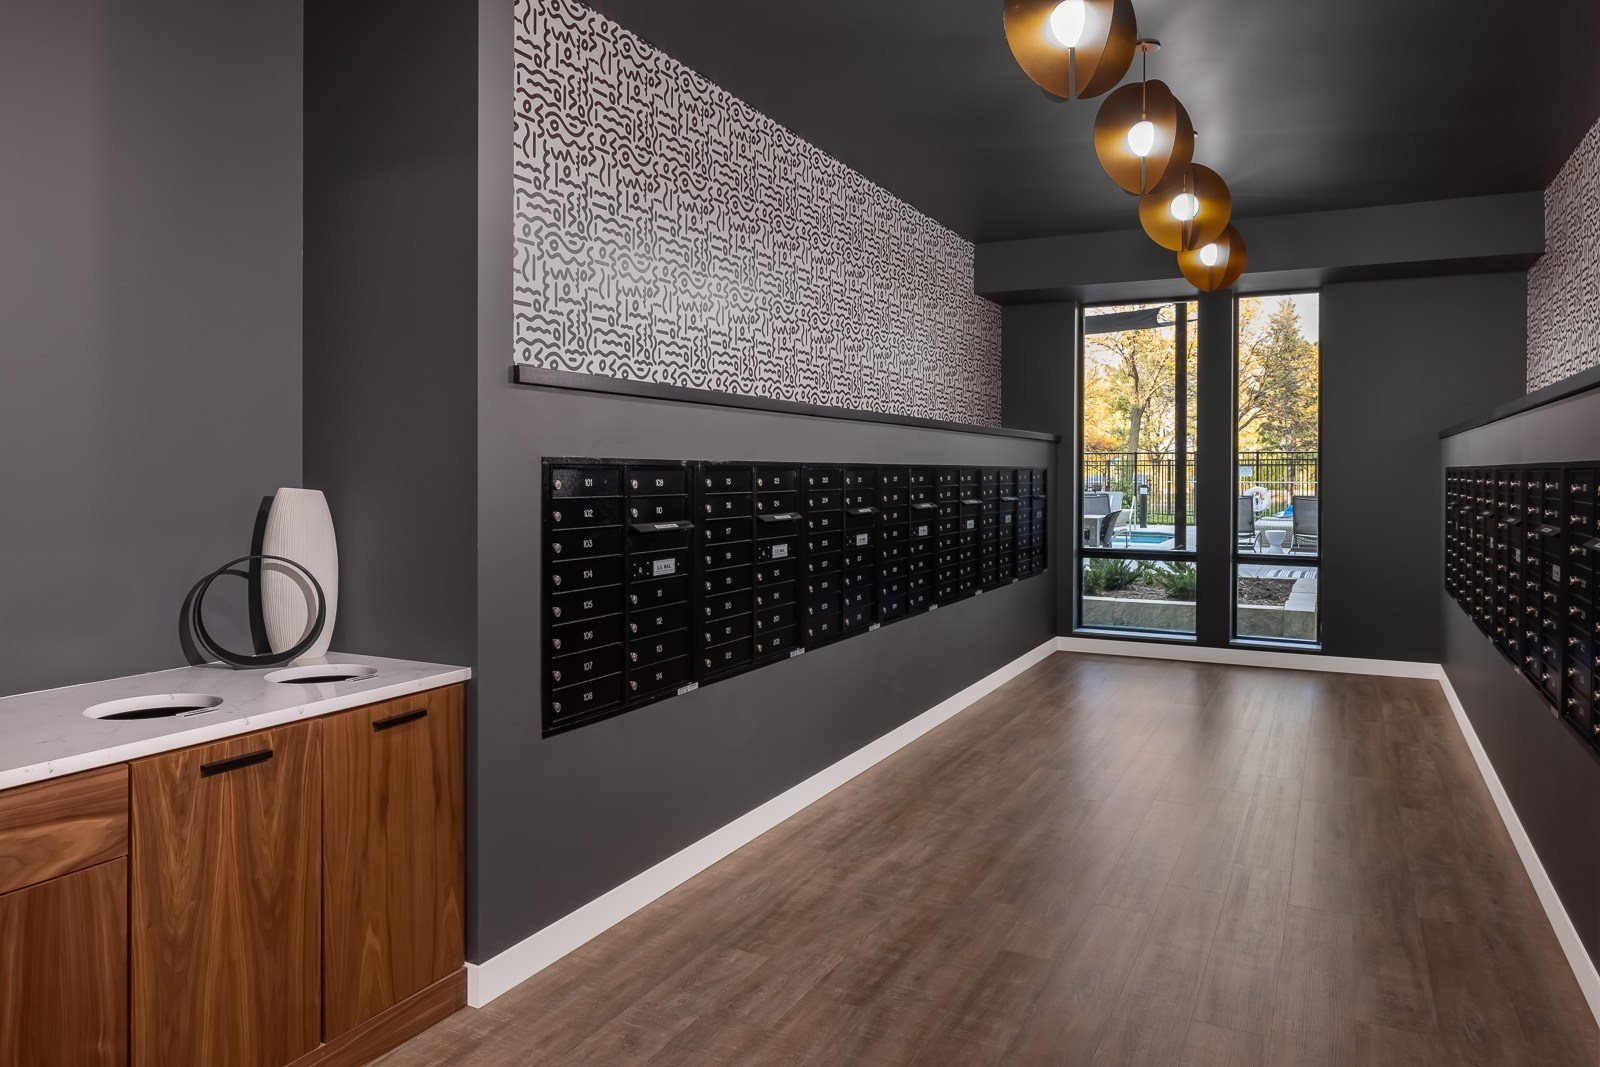 Mail room with package concierge and refrigerated storage for apartment residents